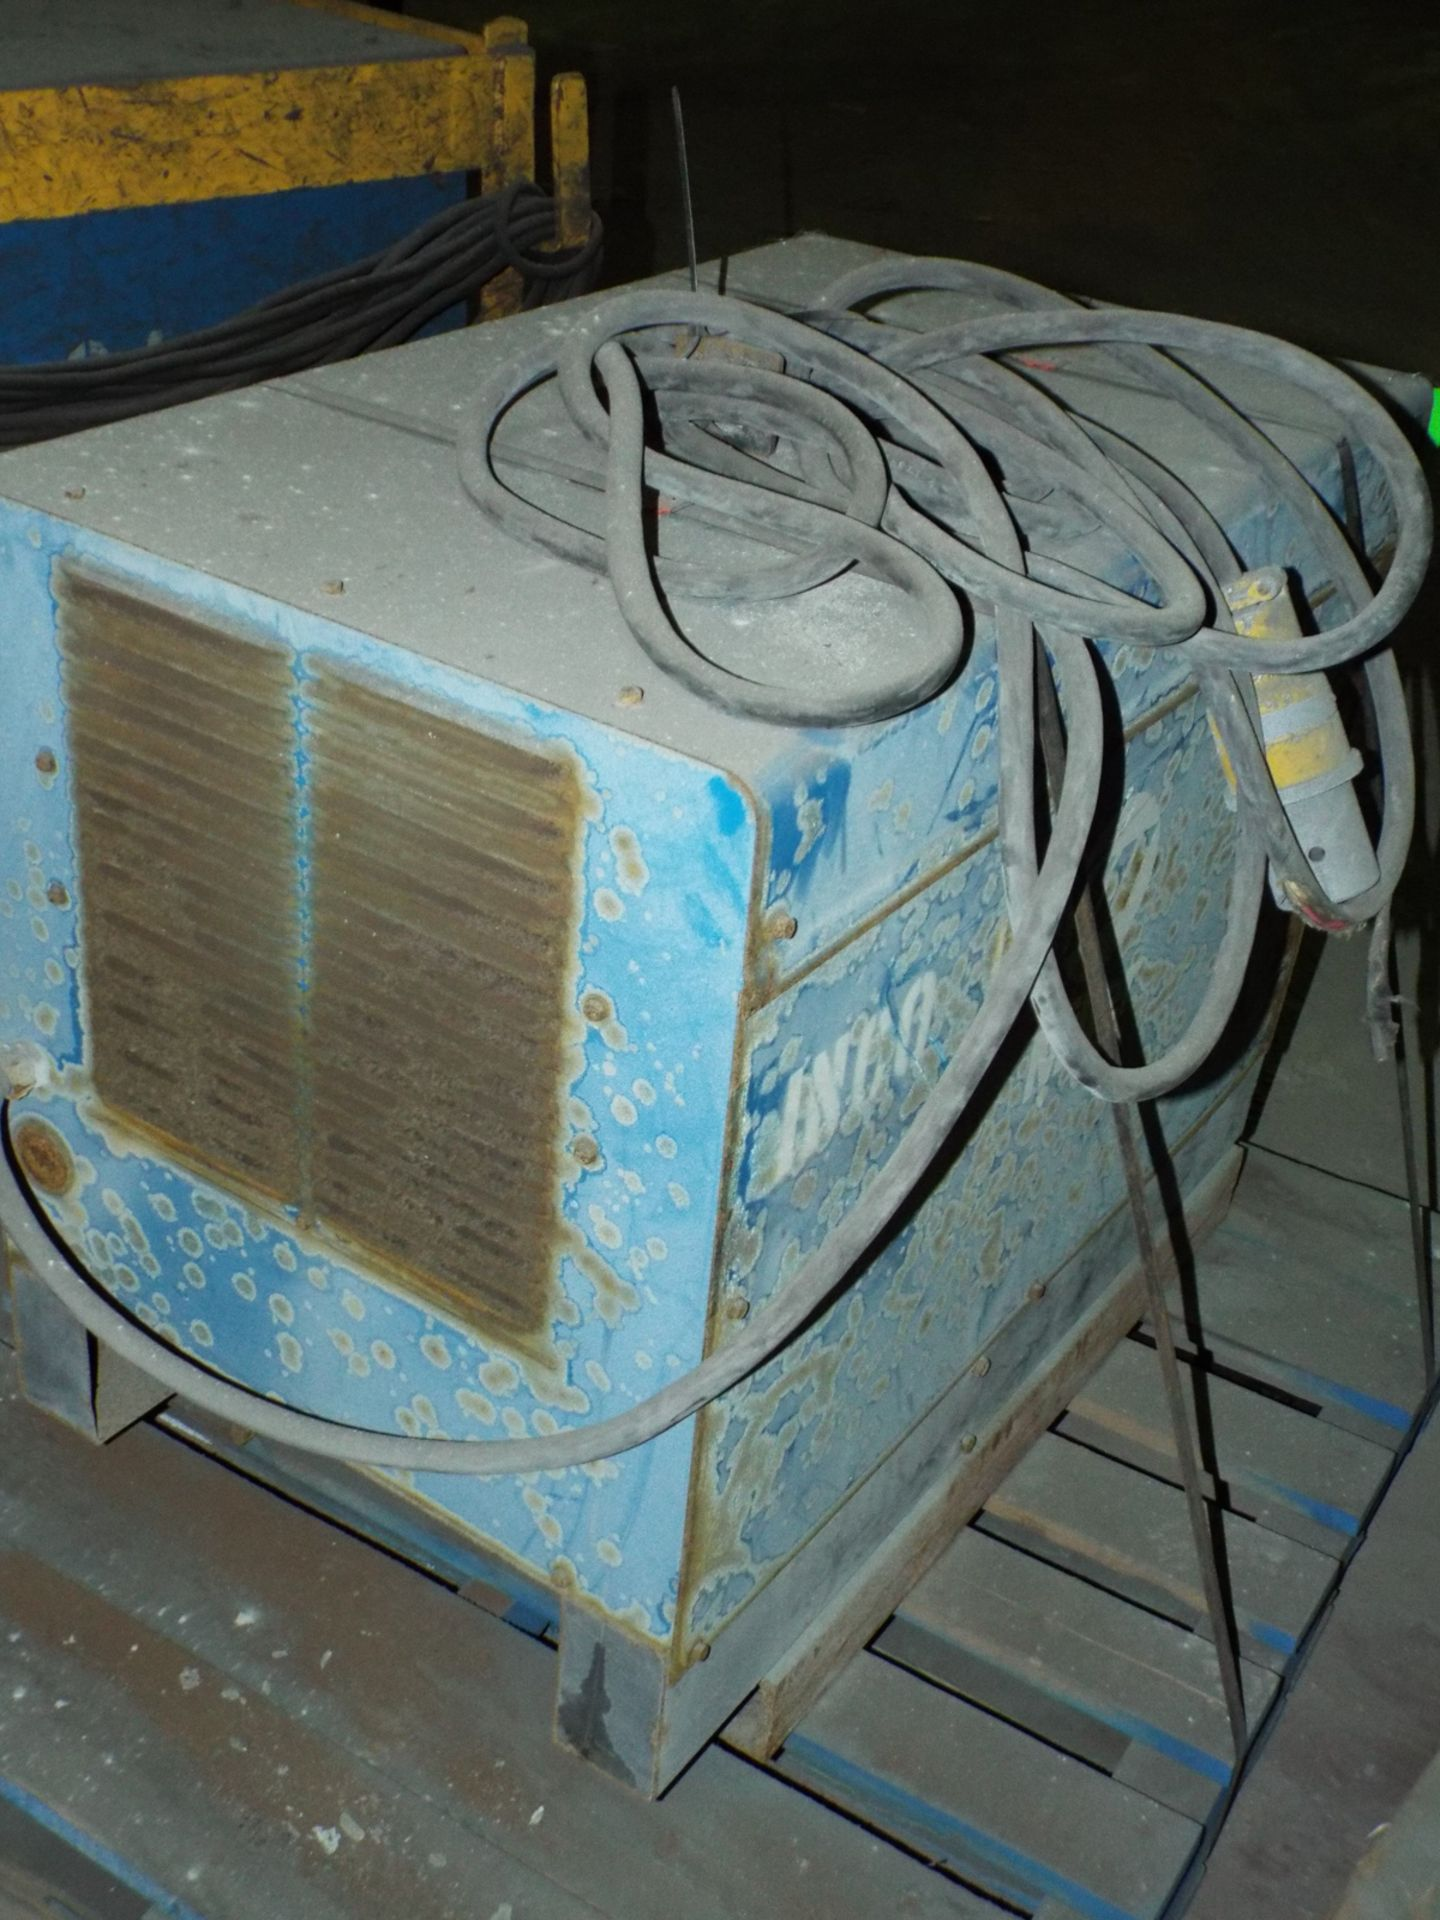 Lot 6 - MILLER INTELLIWELD 650 WELDING POWER SOURCE WITH CABLES, S/N: N/A